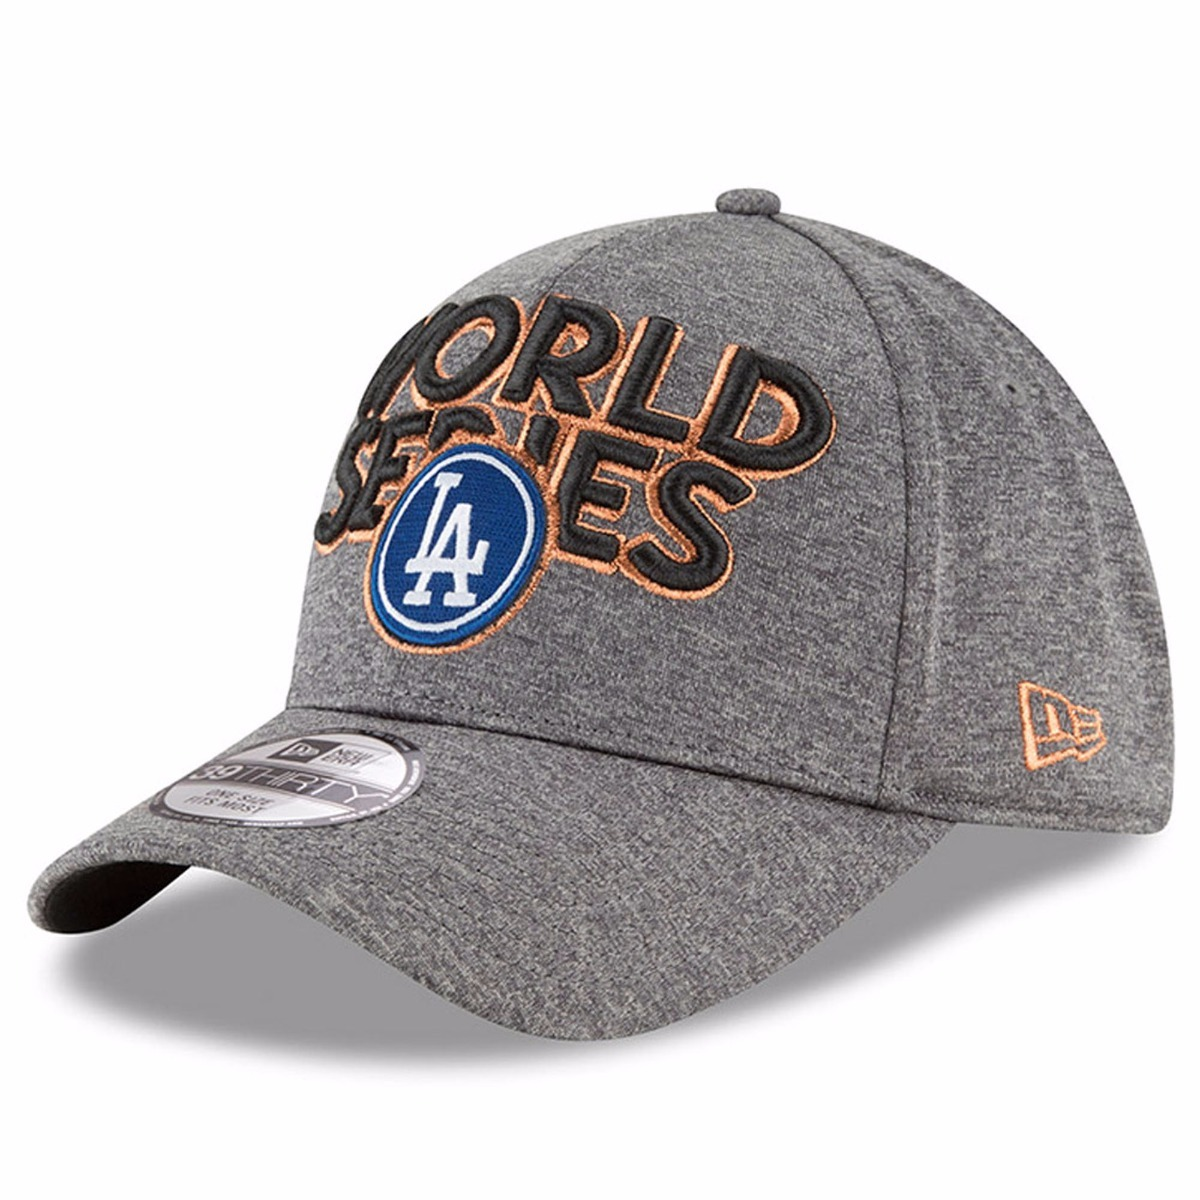 07606e2ca00a4 gorra dodgers newera 39thirty flex hat campeon liga nacional. Cargando zoom.